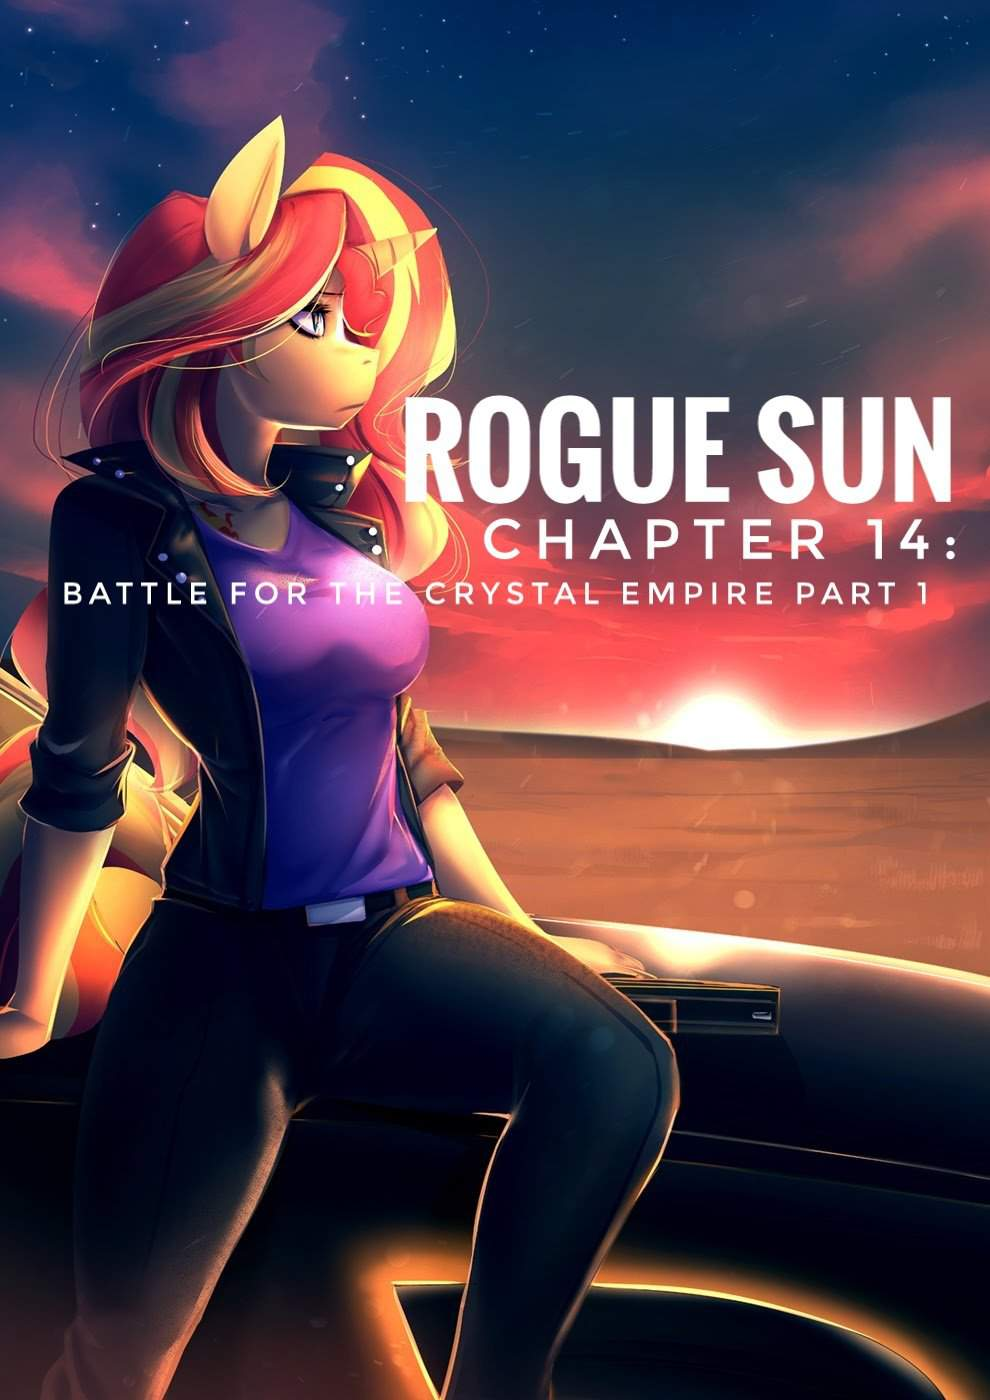 Bad Blood Quotev Rogue Sun Chapter 14 Battle For The Crystal Empire Part 1